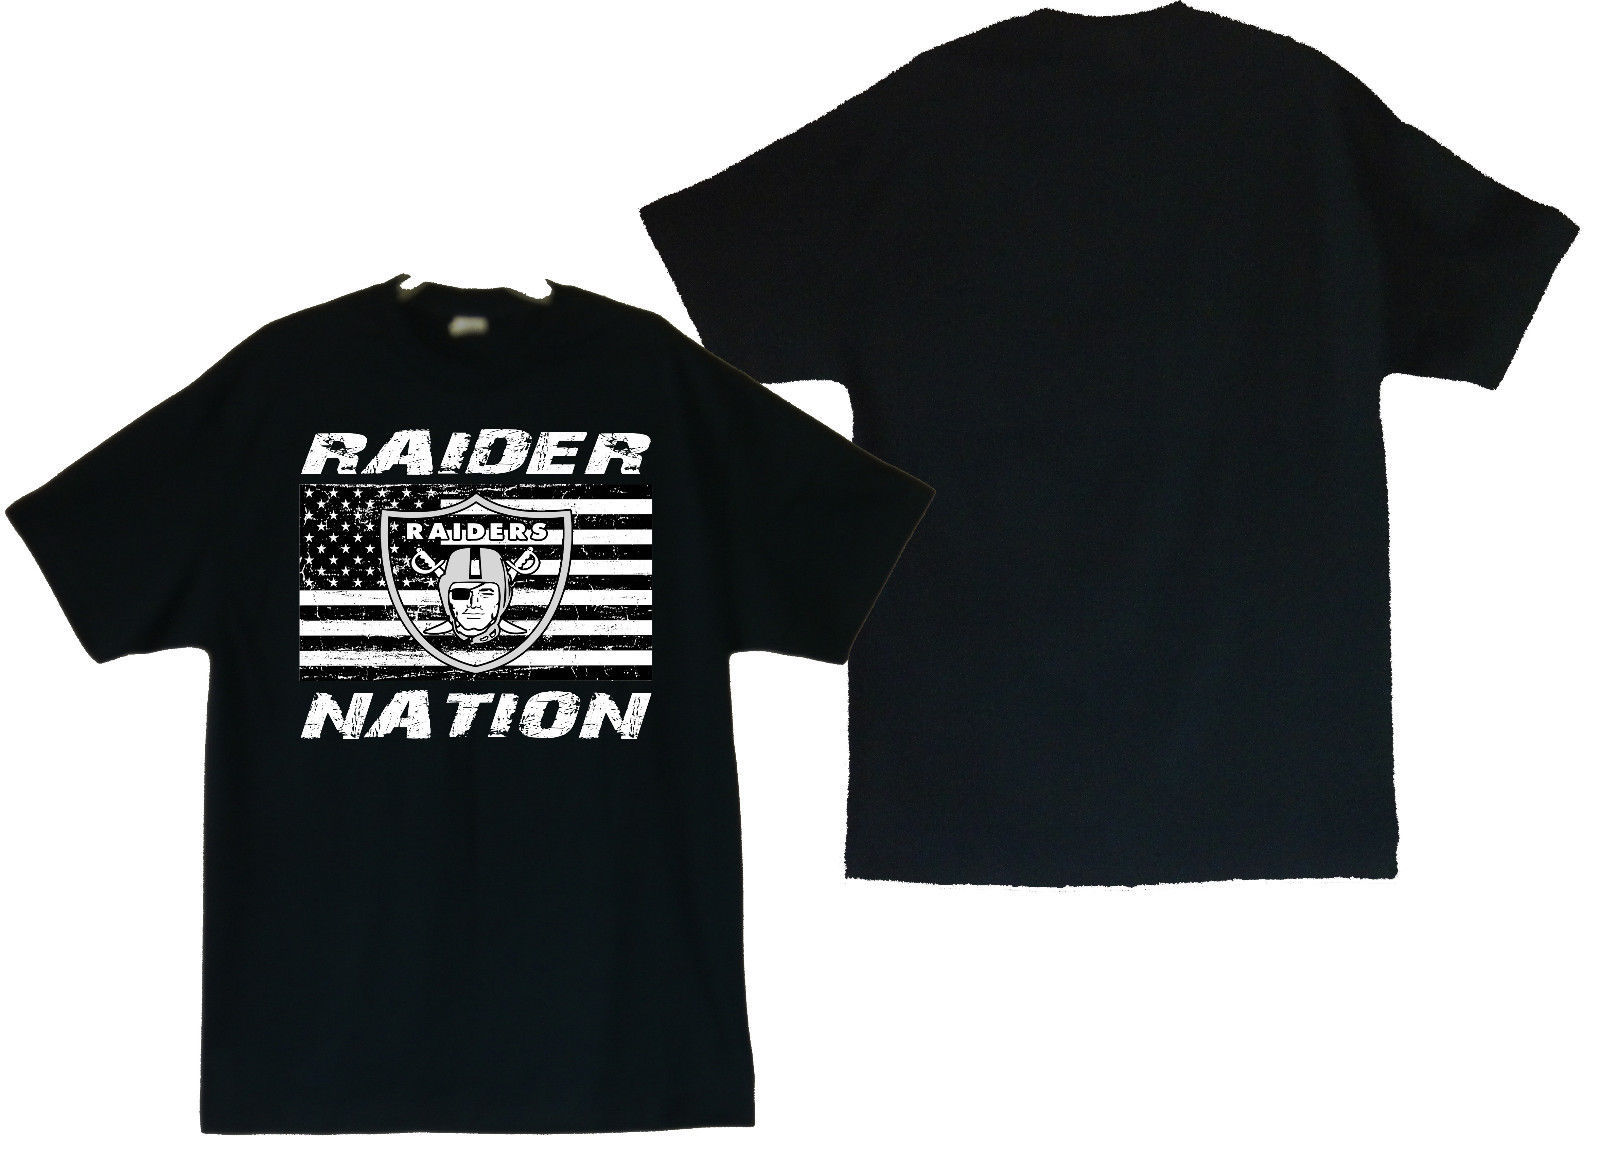 Primary image for Raider Nation With US Flag Image Men's Black T-Shirt